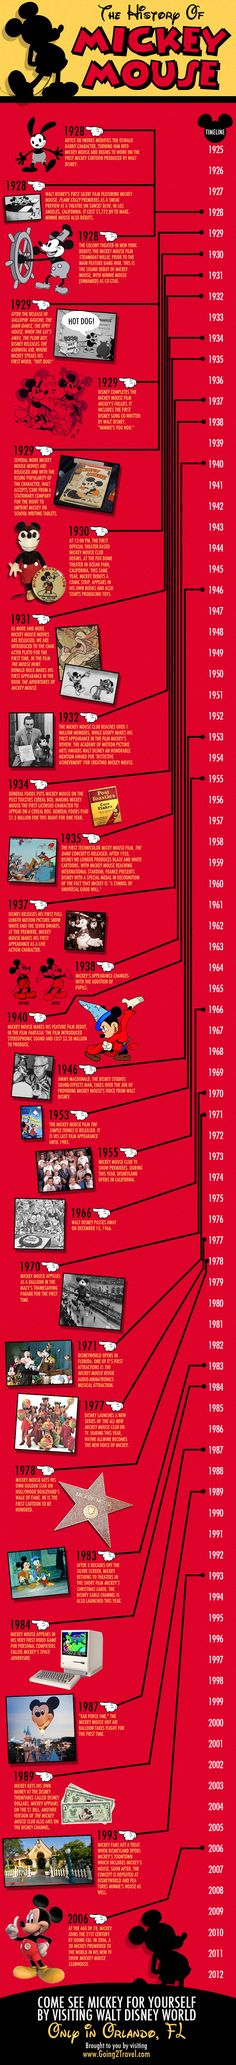 The History of Disneys Mickey Mouse